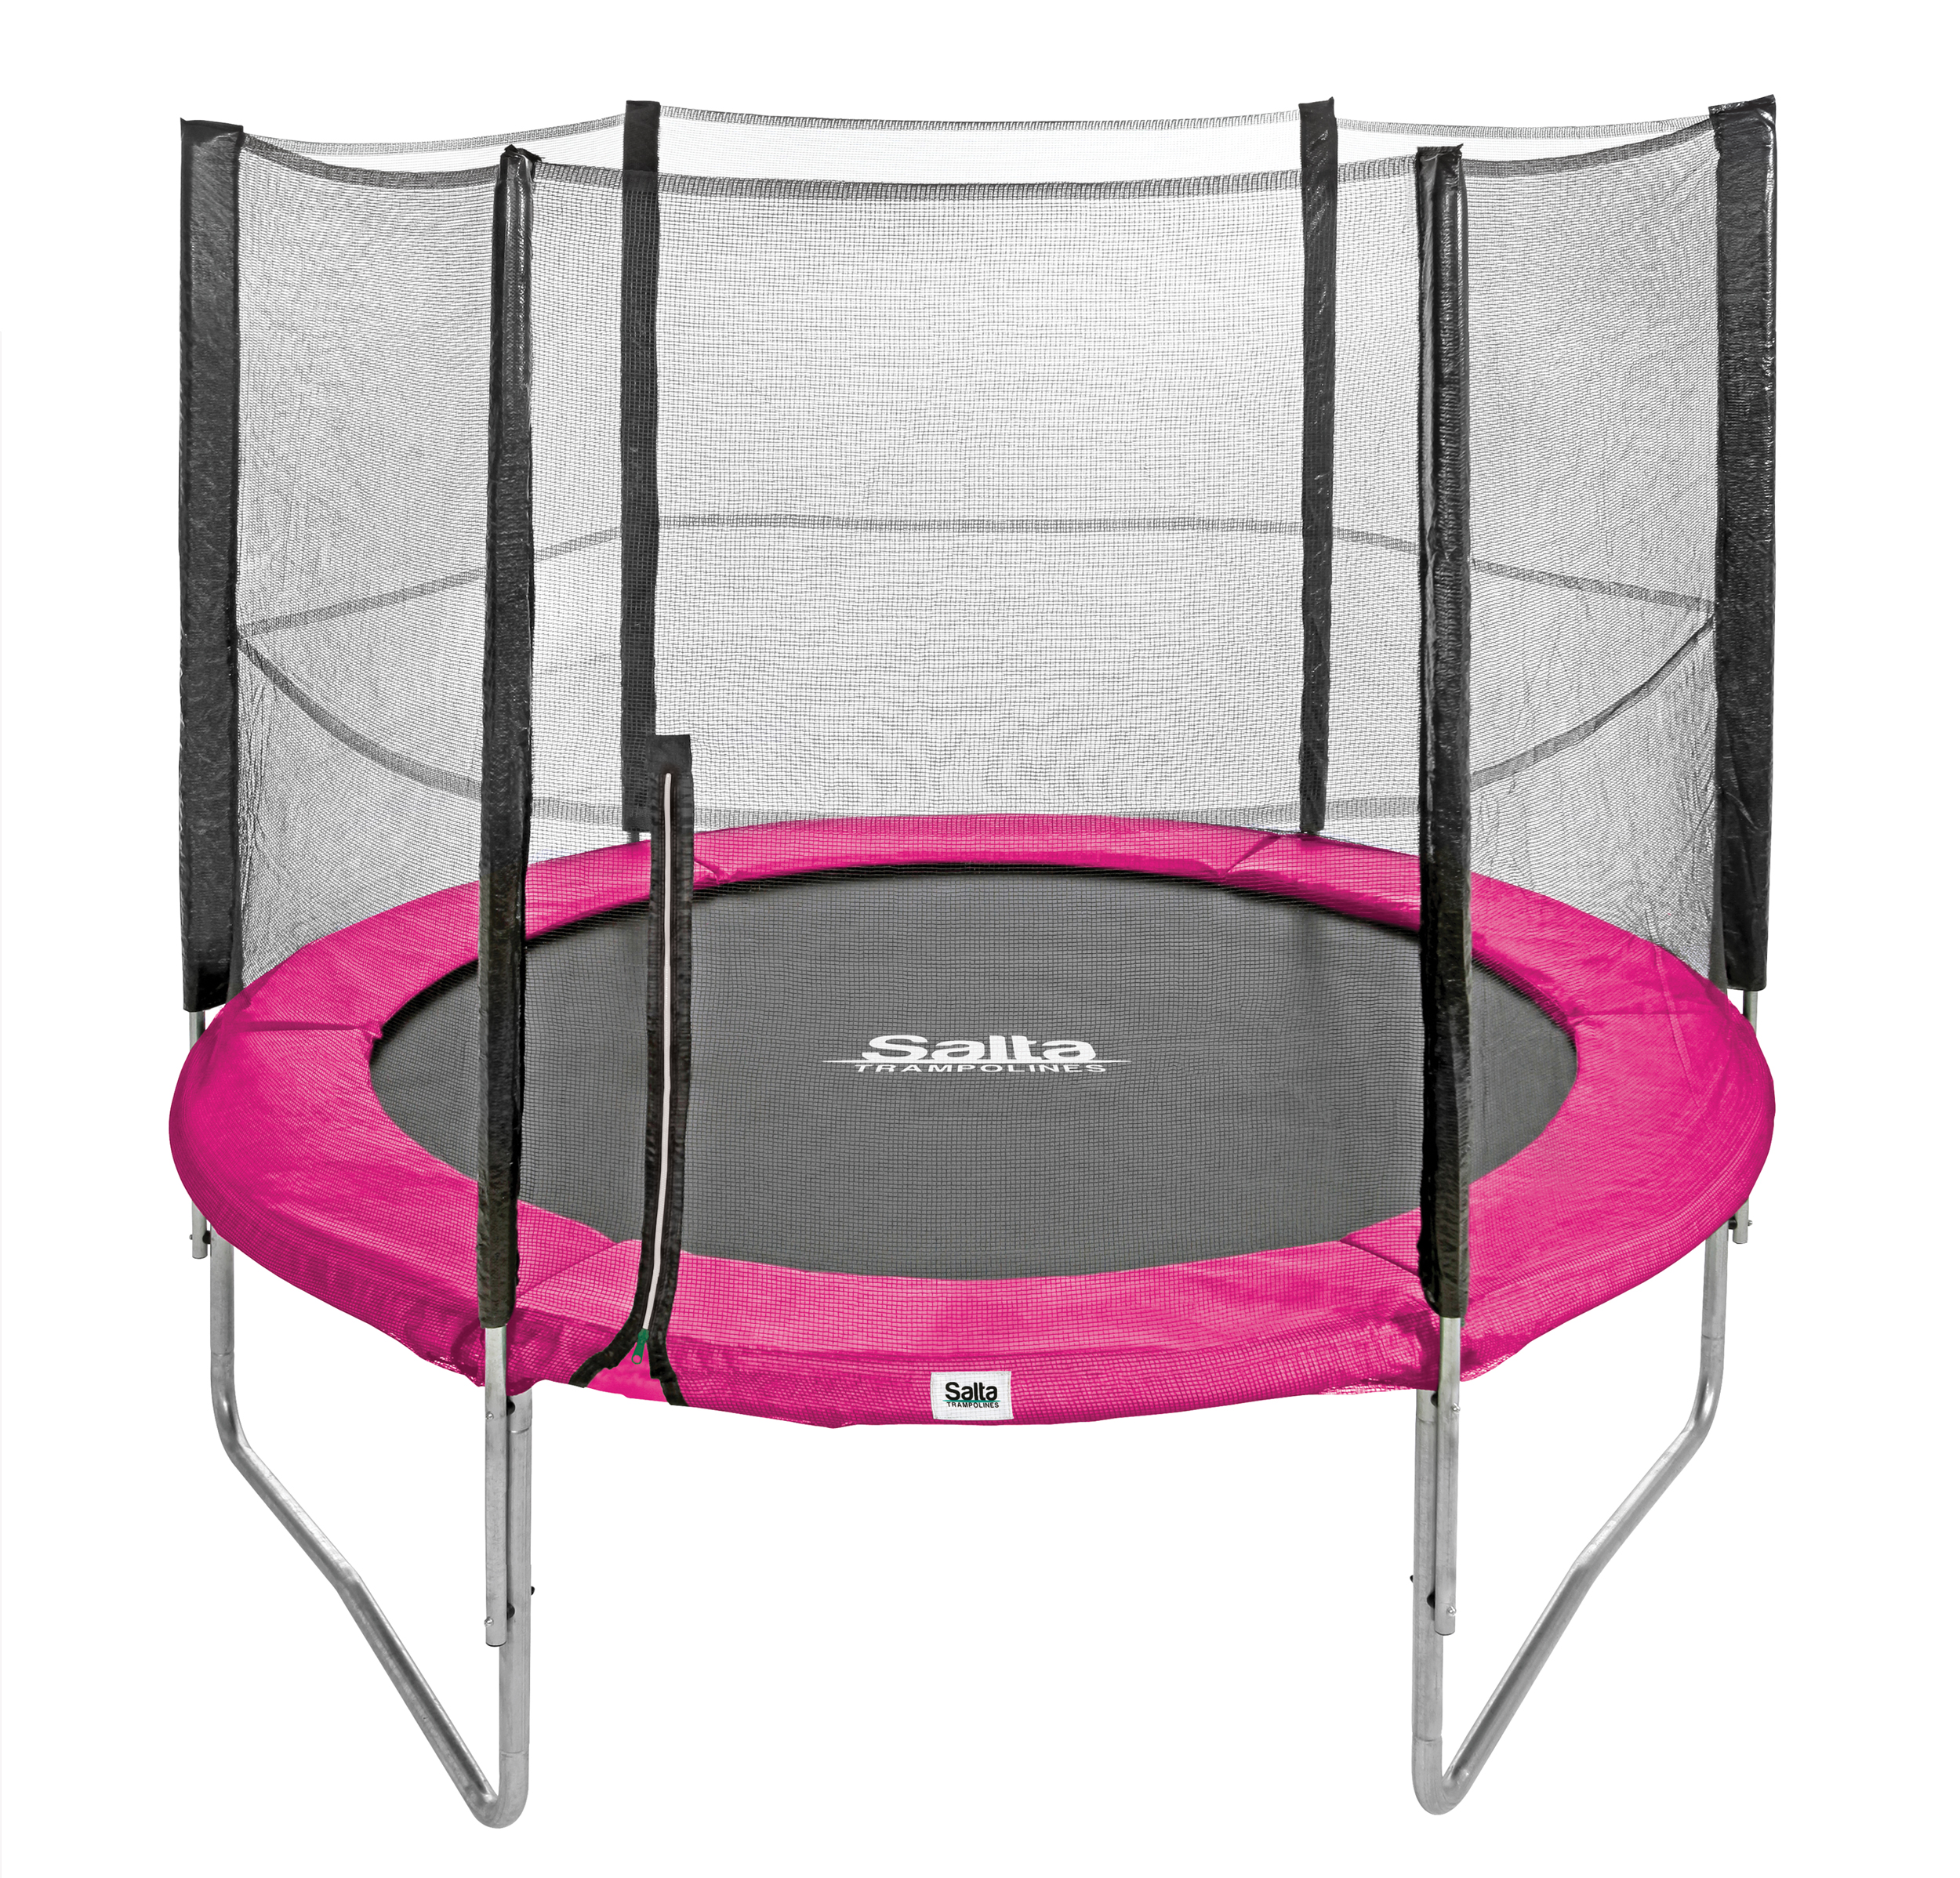 Image of   Salta 8 ft Disport Combo Trampolin runde - 244 cm - Pink